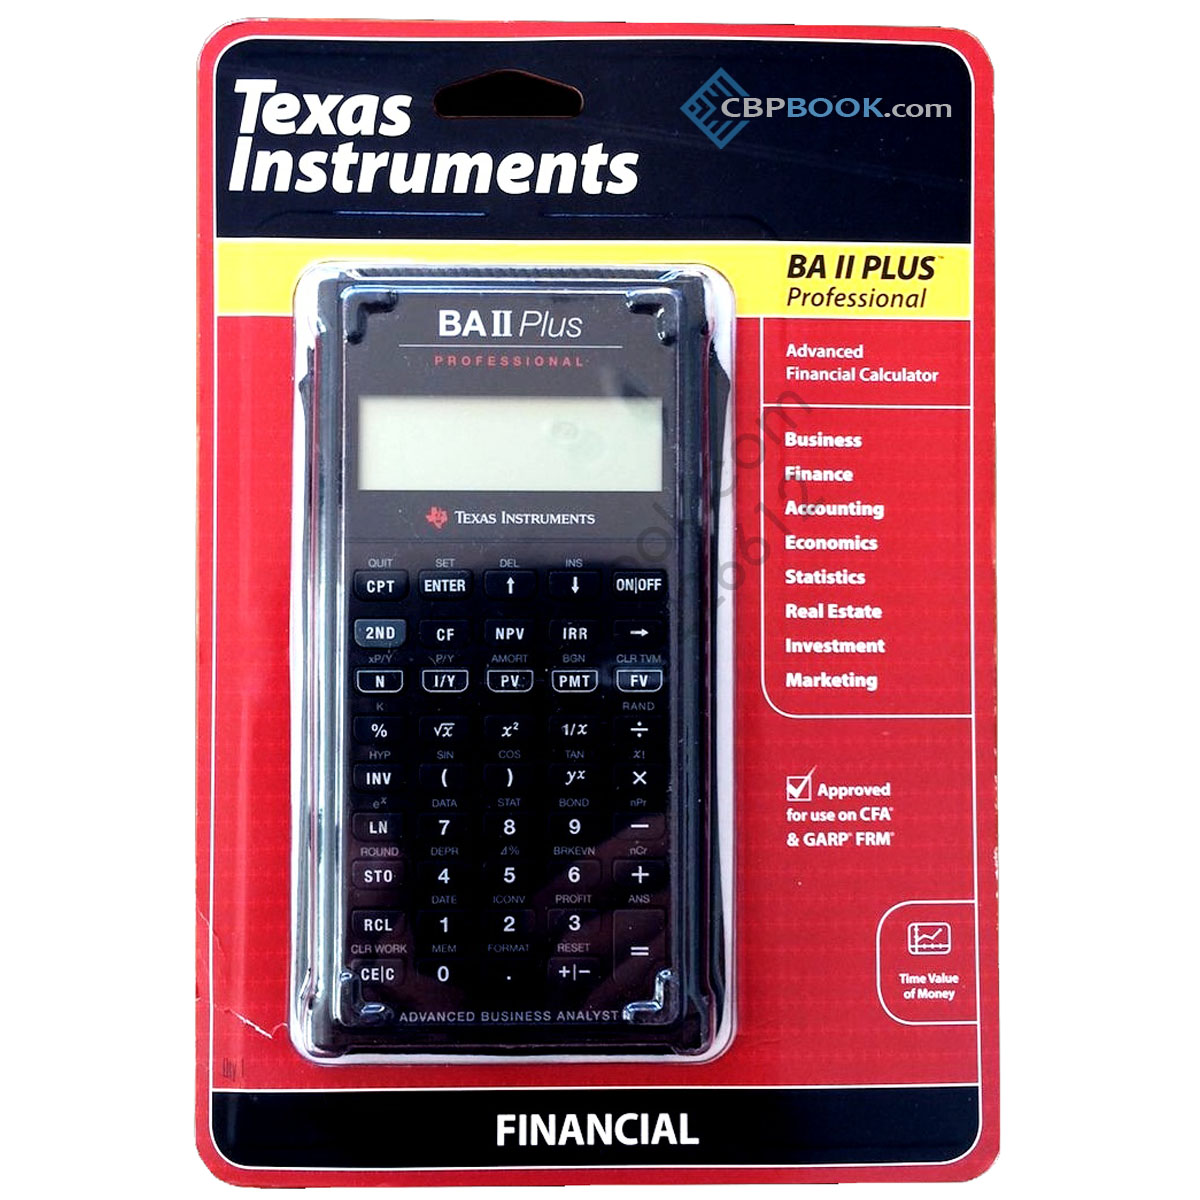 Texas Instruments Advanced Financial Calculator Ba 2 Plus Professional Roved For Use On Cfa And Garp